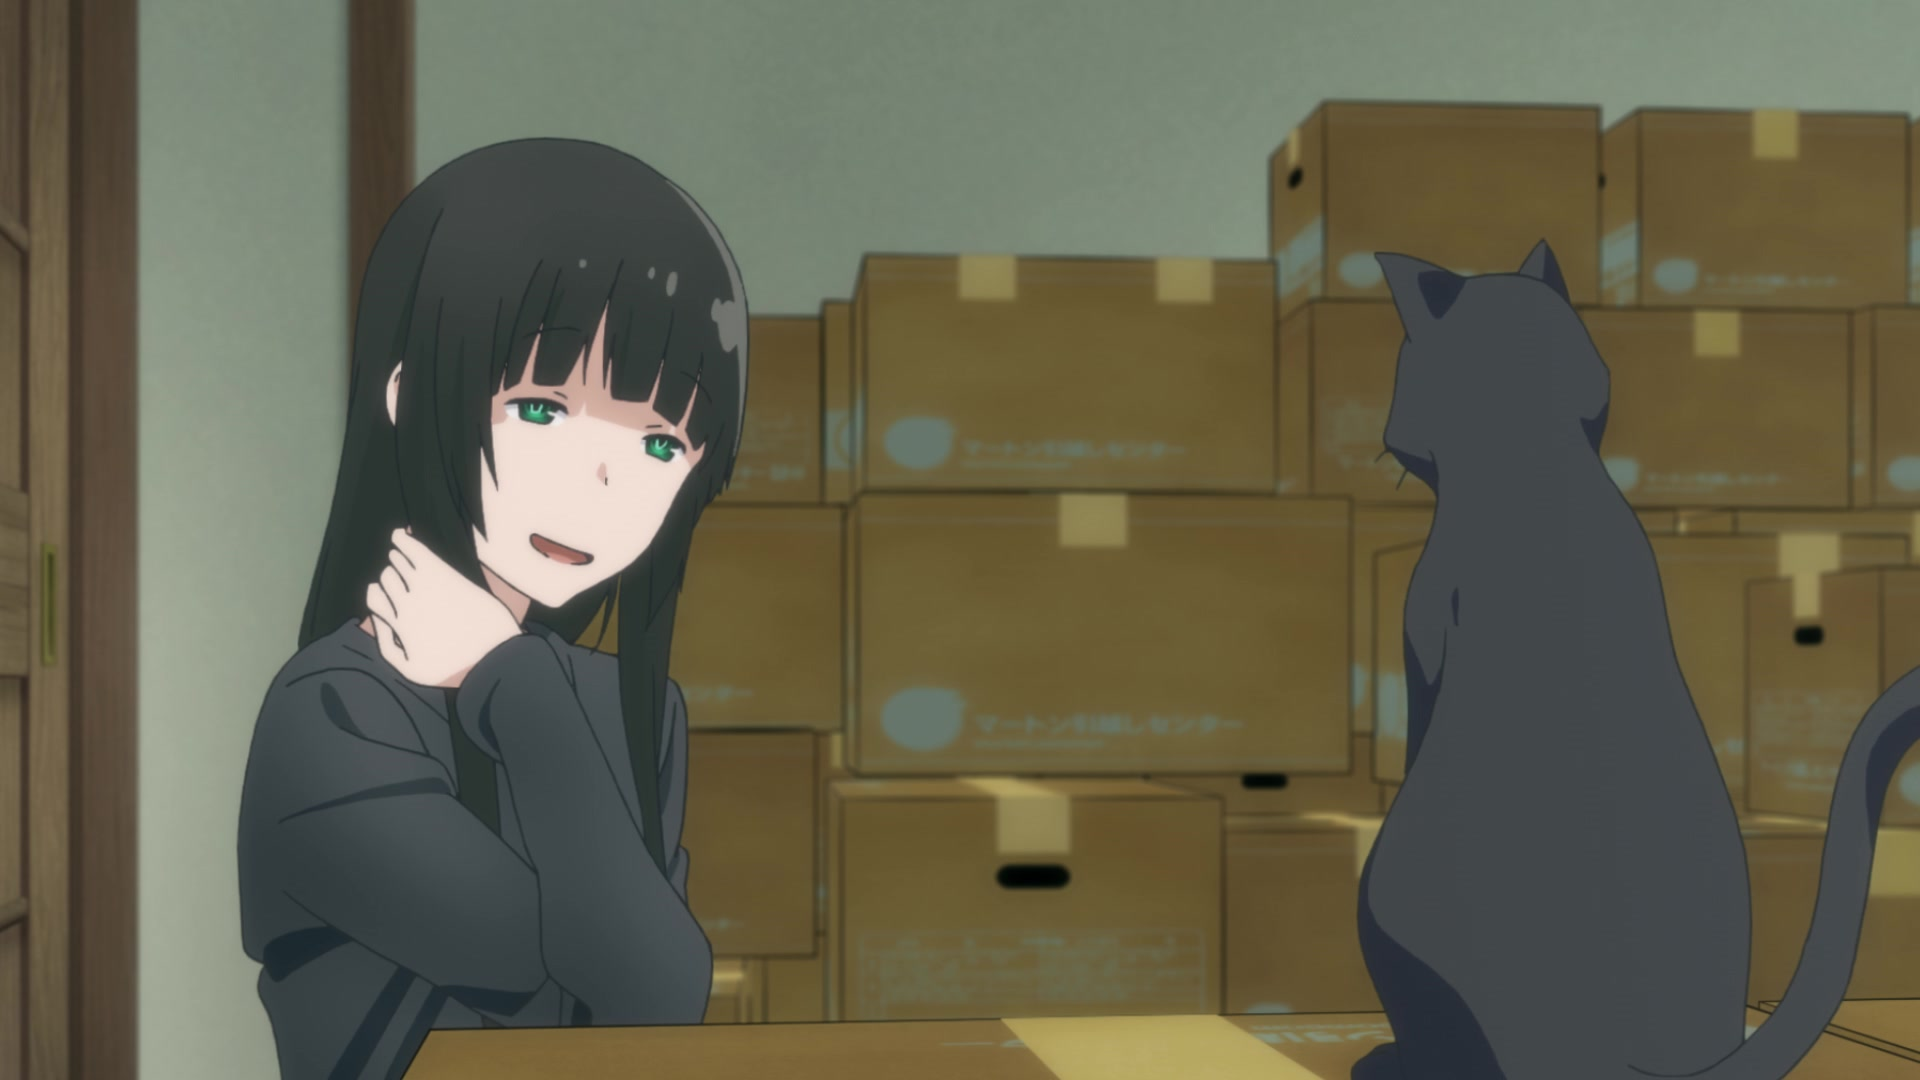 Watch flying witch episode 1 english dub